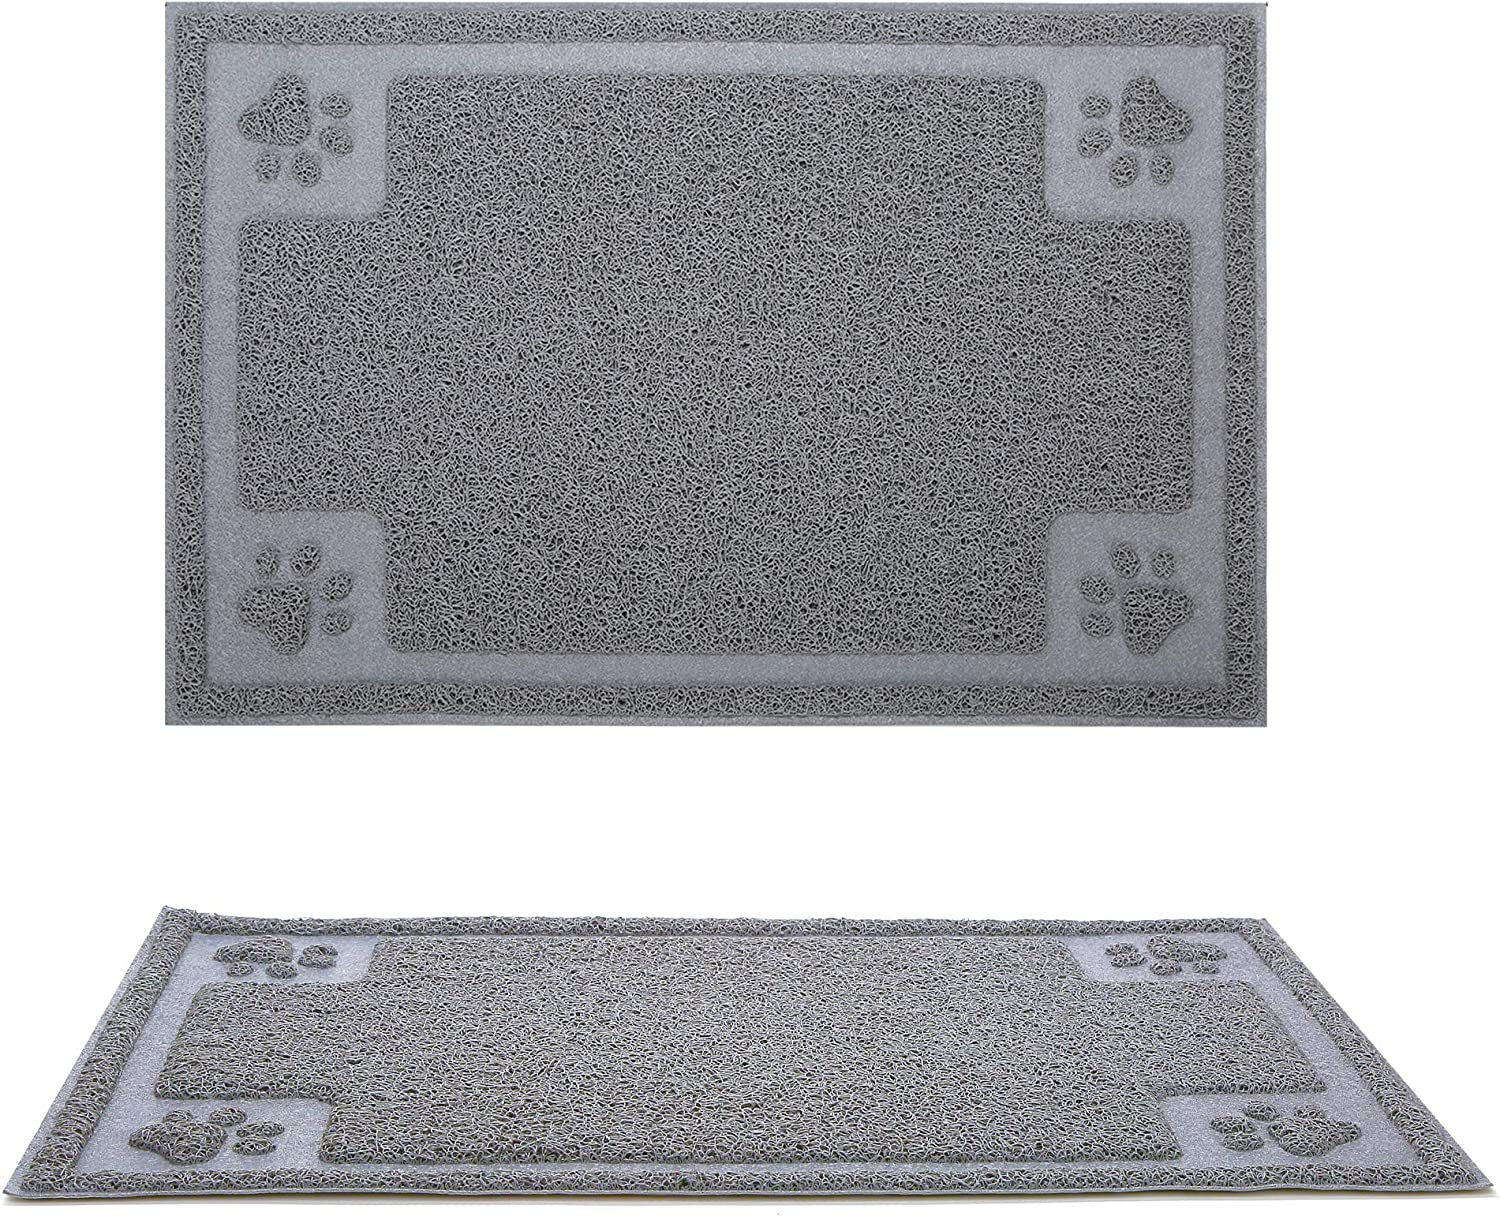 Gefryco Pet Dog Feeding Mats for Food and Water Bowl, Traps Litter from Box and Paws, Flexible Waterproof and Slip Resistant Dogs & Cats Mat